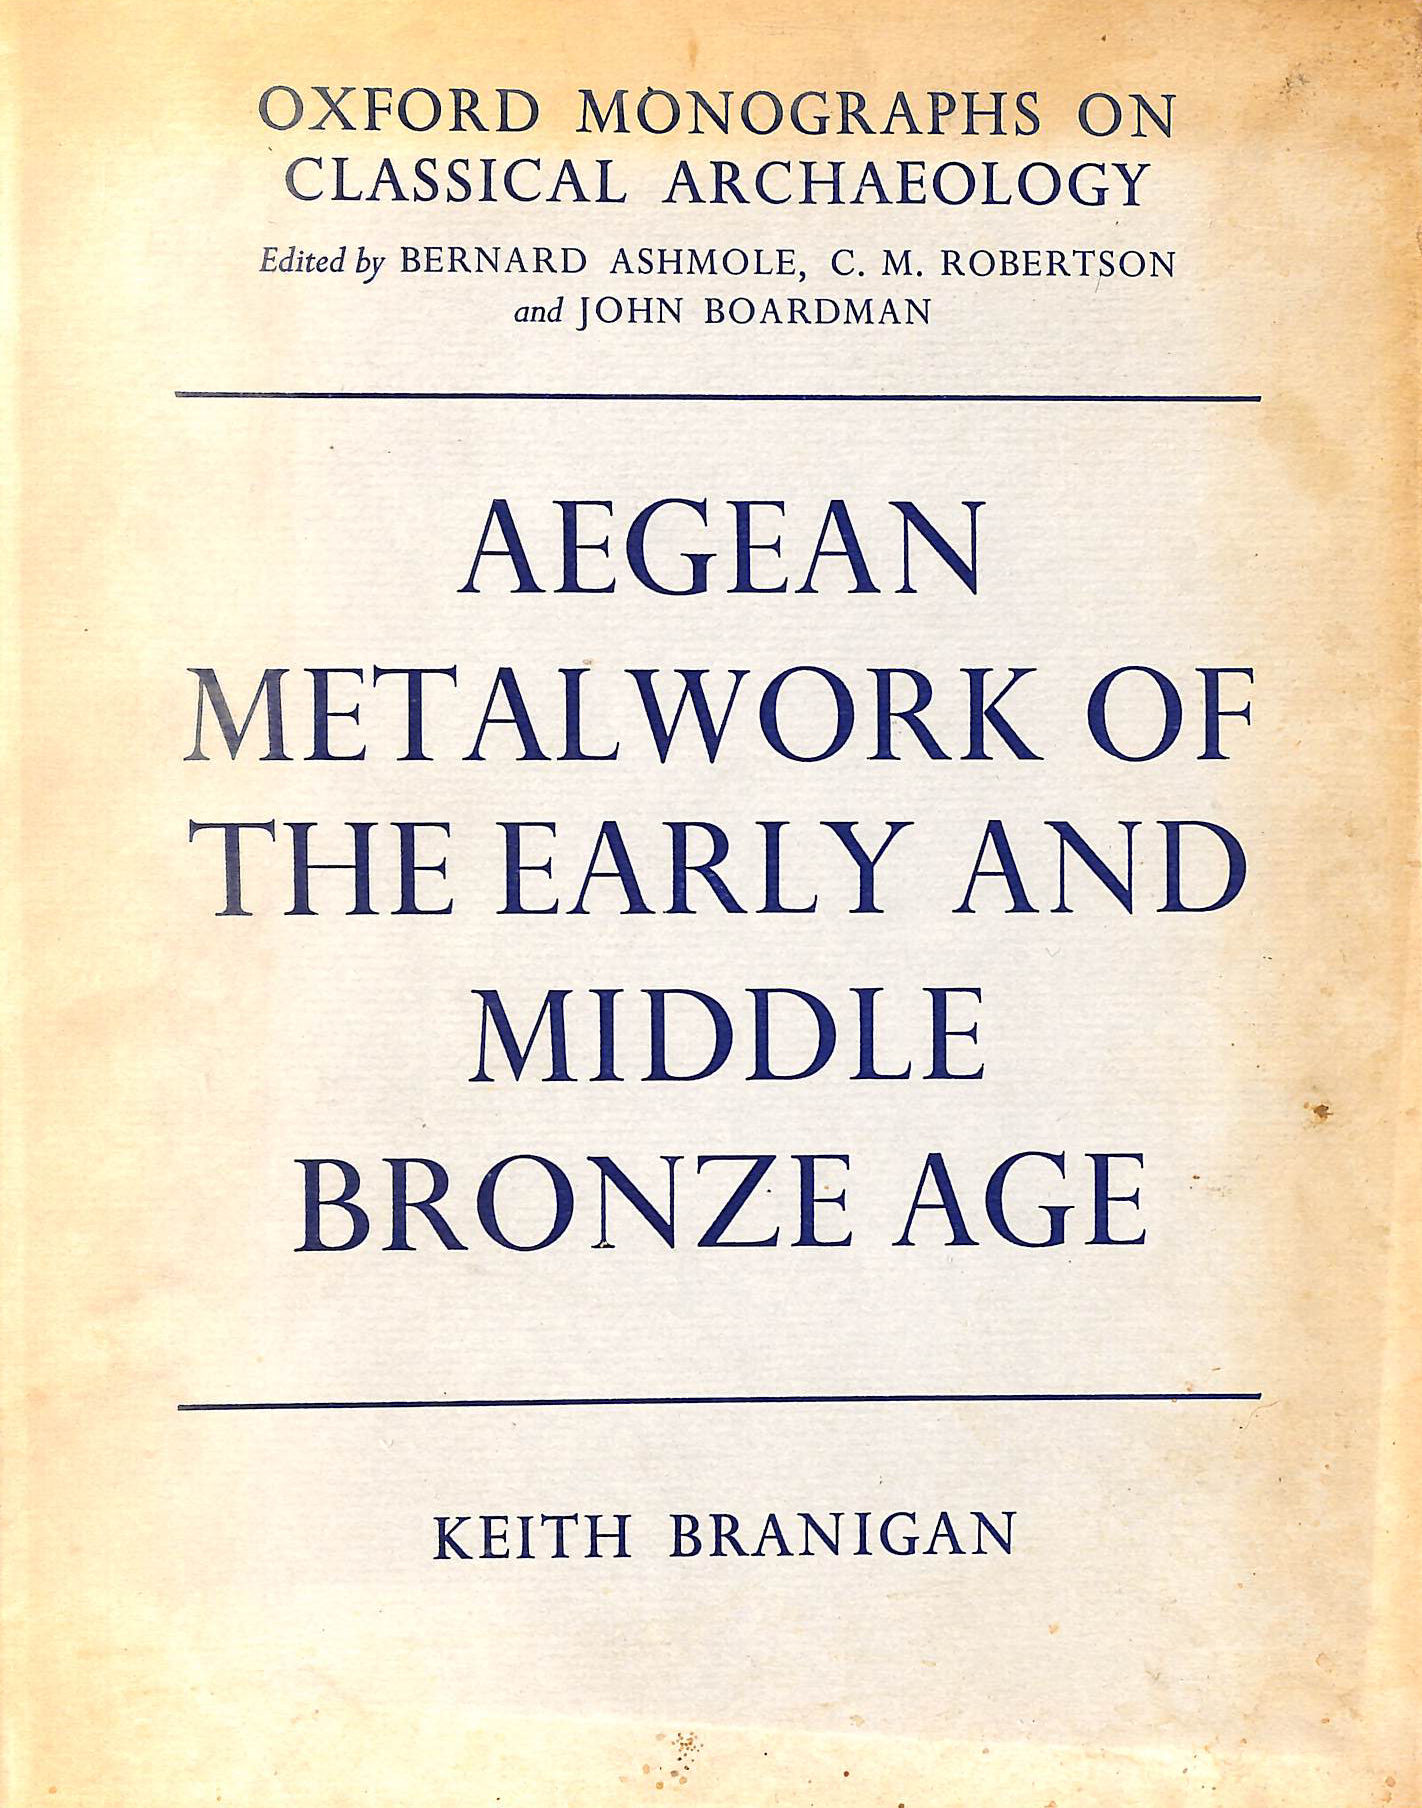 Image for Aegean Metalwork of the Early and Middle Bronze Age (Oxford Monographs on Classical Archaeology)